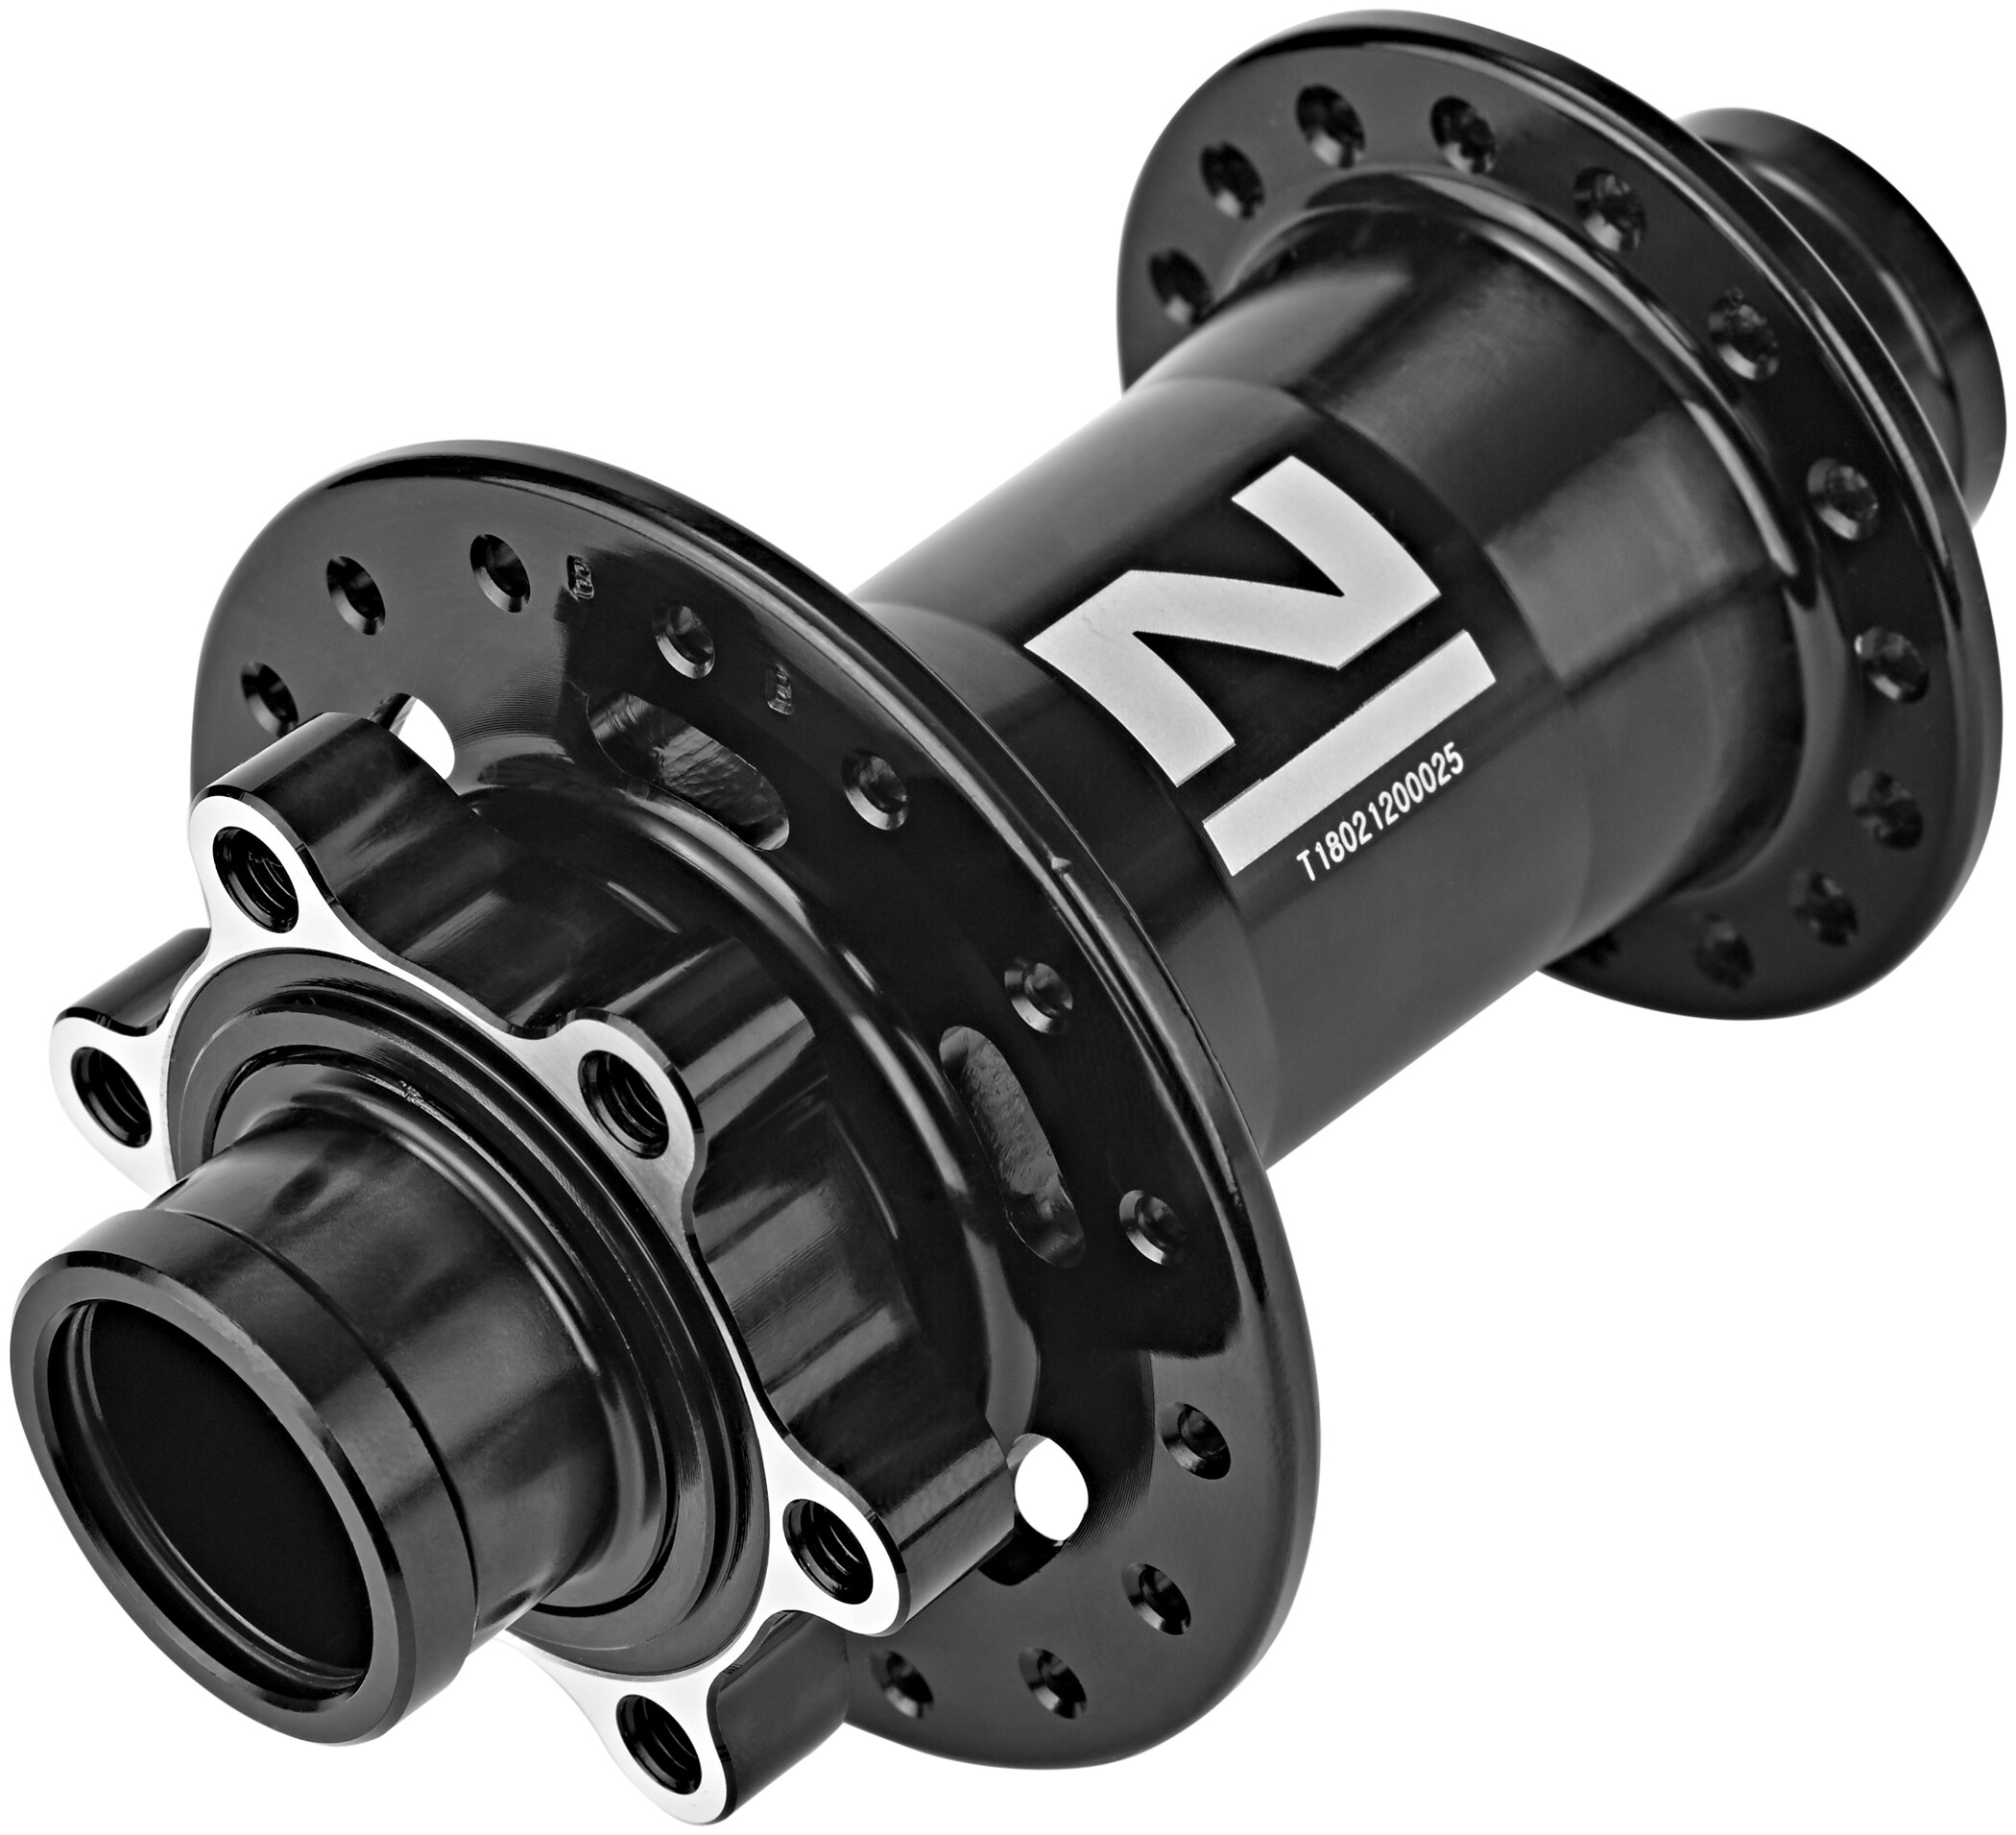 Novatec Downhill Nav 20 mm MTB Disc Stikakse, black (2019) | Hubs